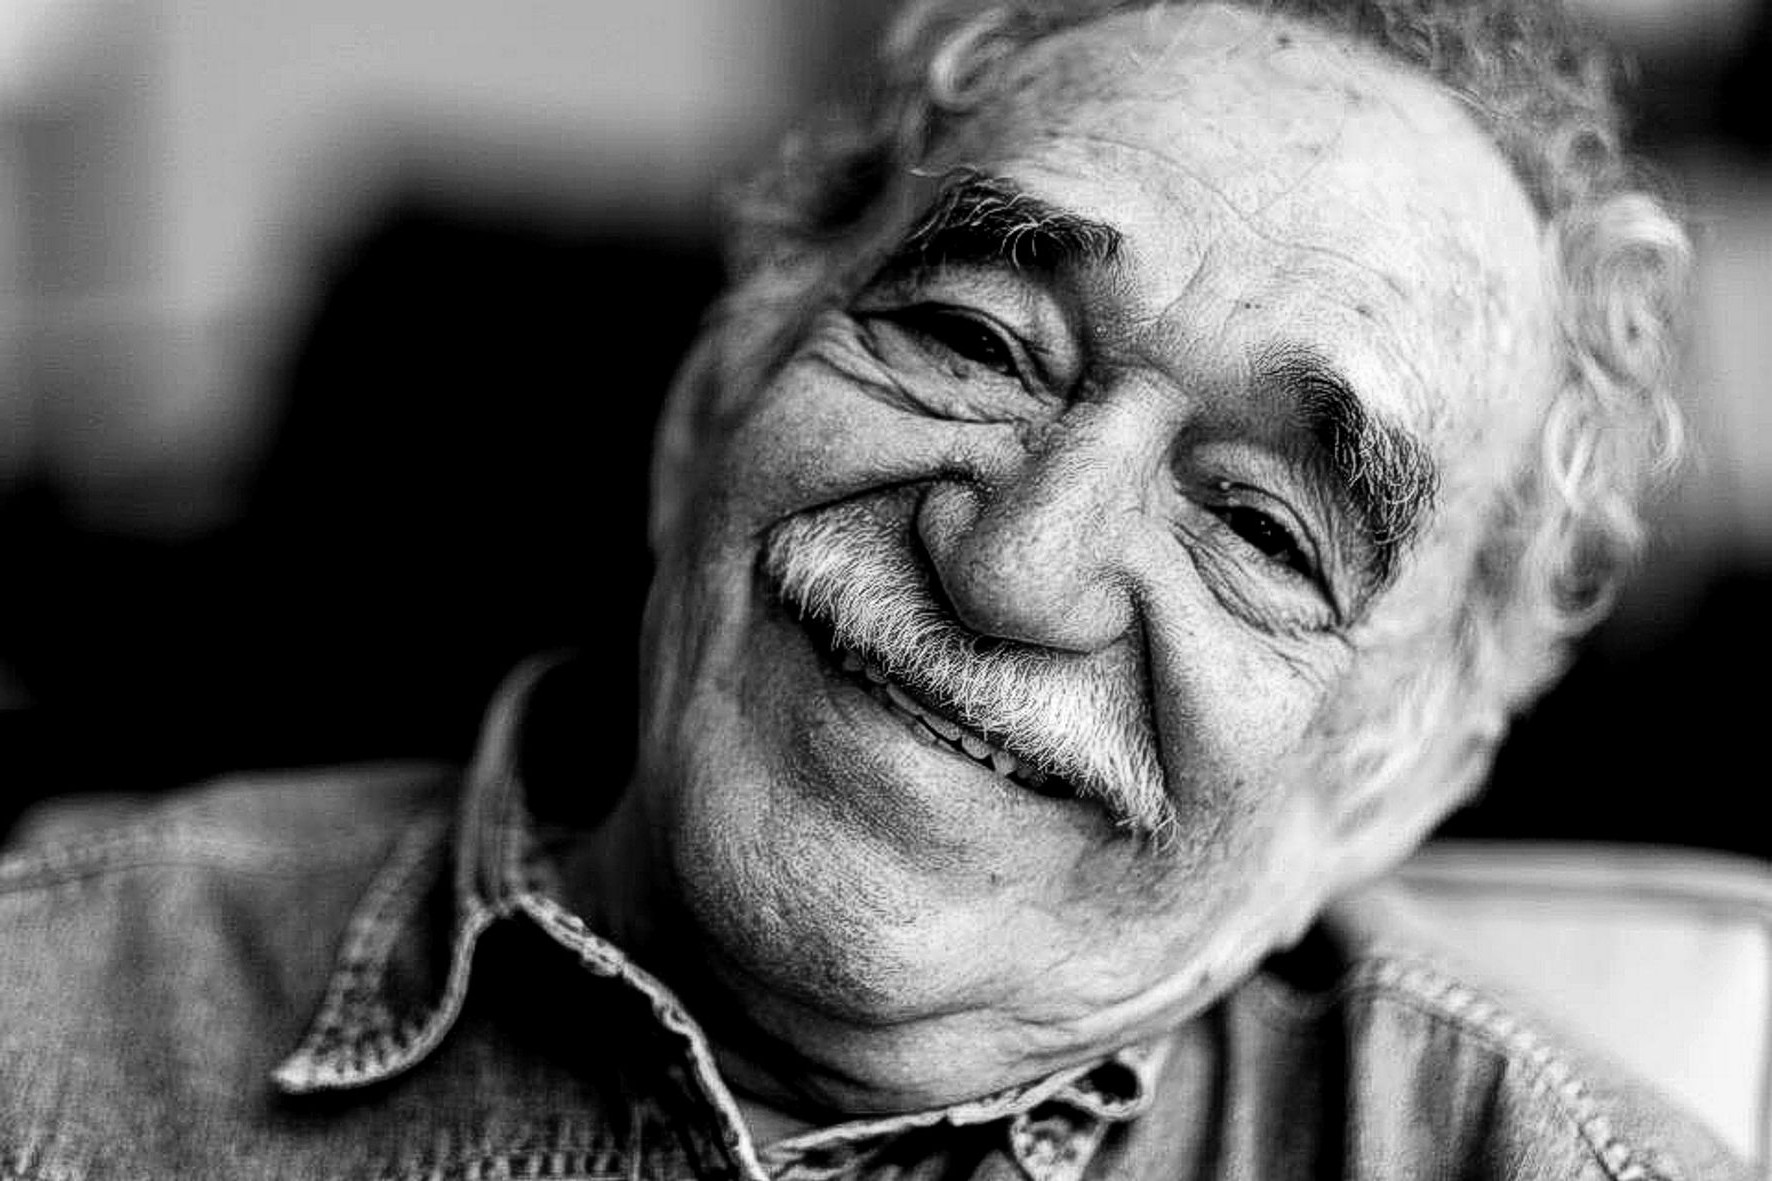 gabriel garcia marquez Nobel laureate gabriel garcia marquez, who died thursday at his home in mexico city at the age of 87, has been hailed as a giant of modern literature, a writer of intoxicating novels and.